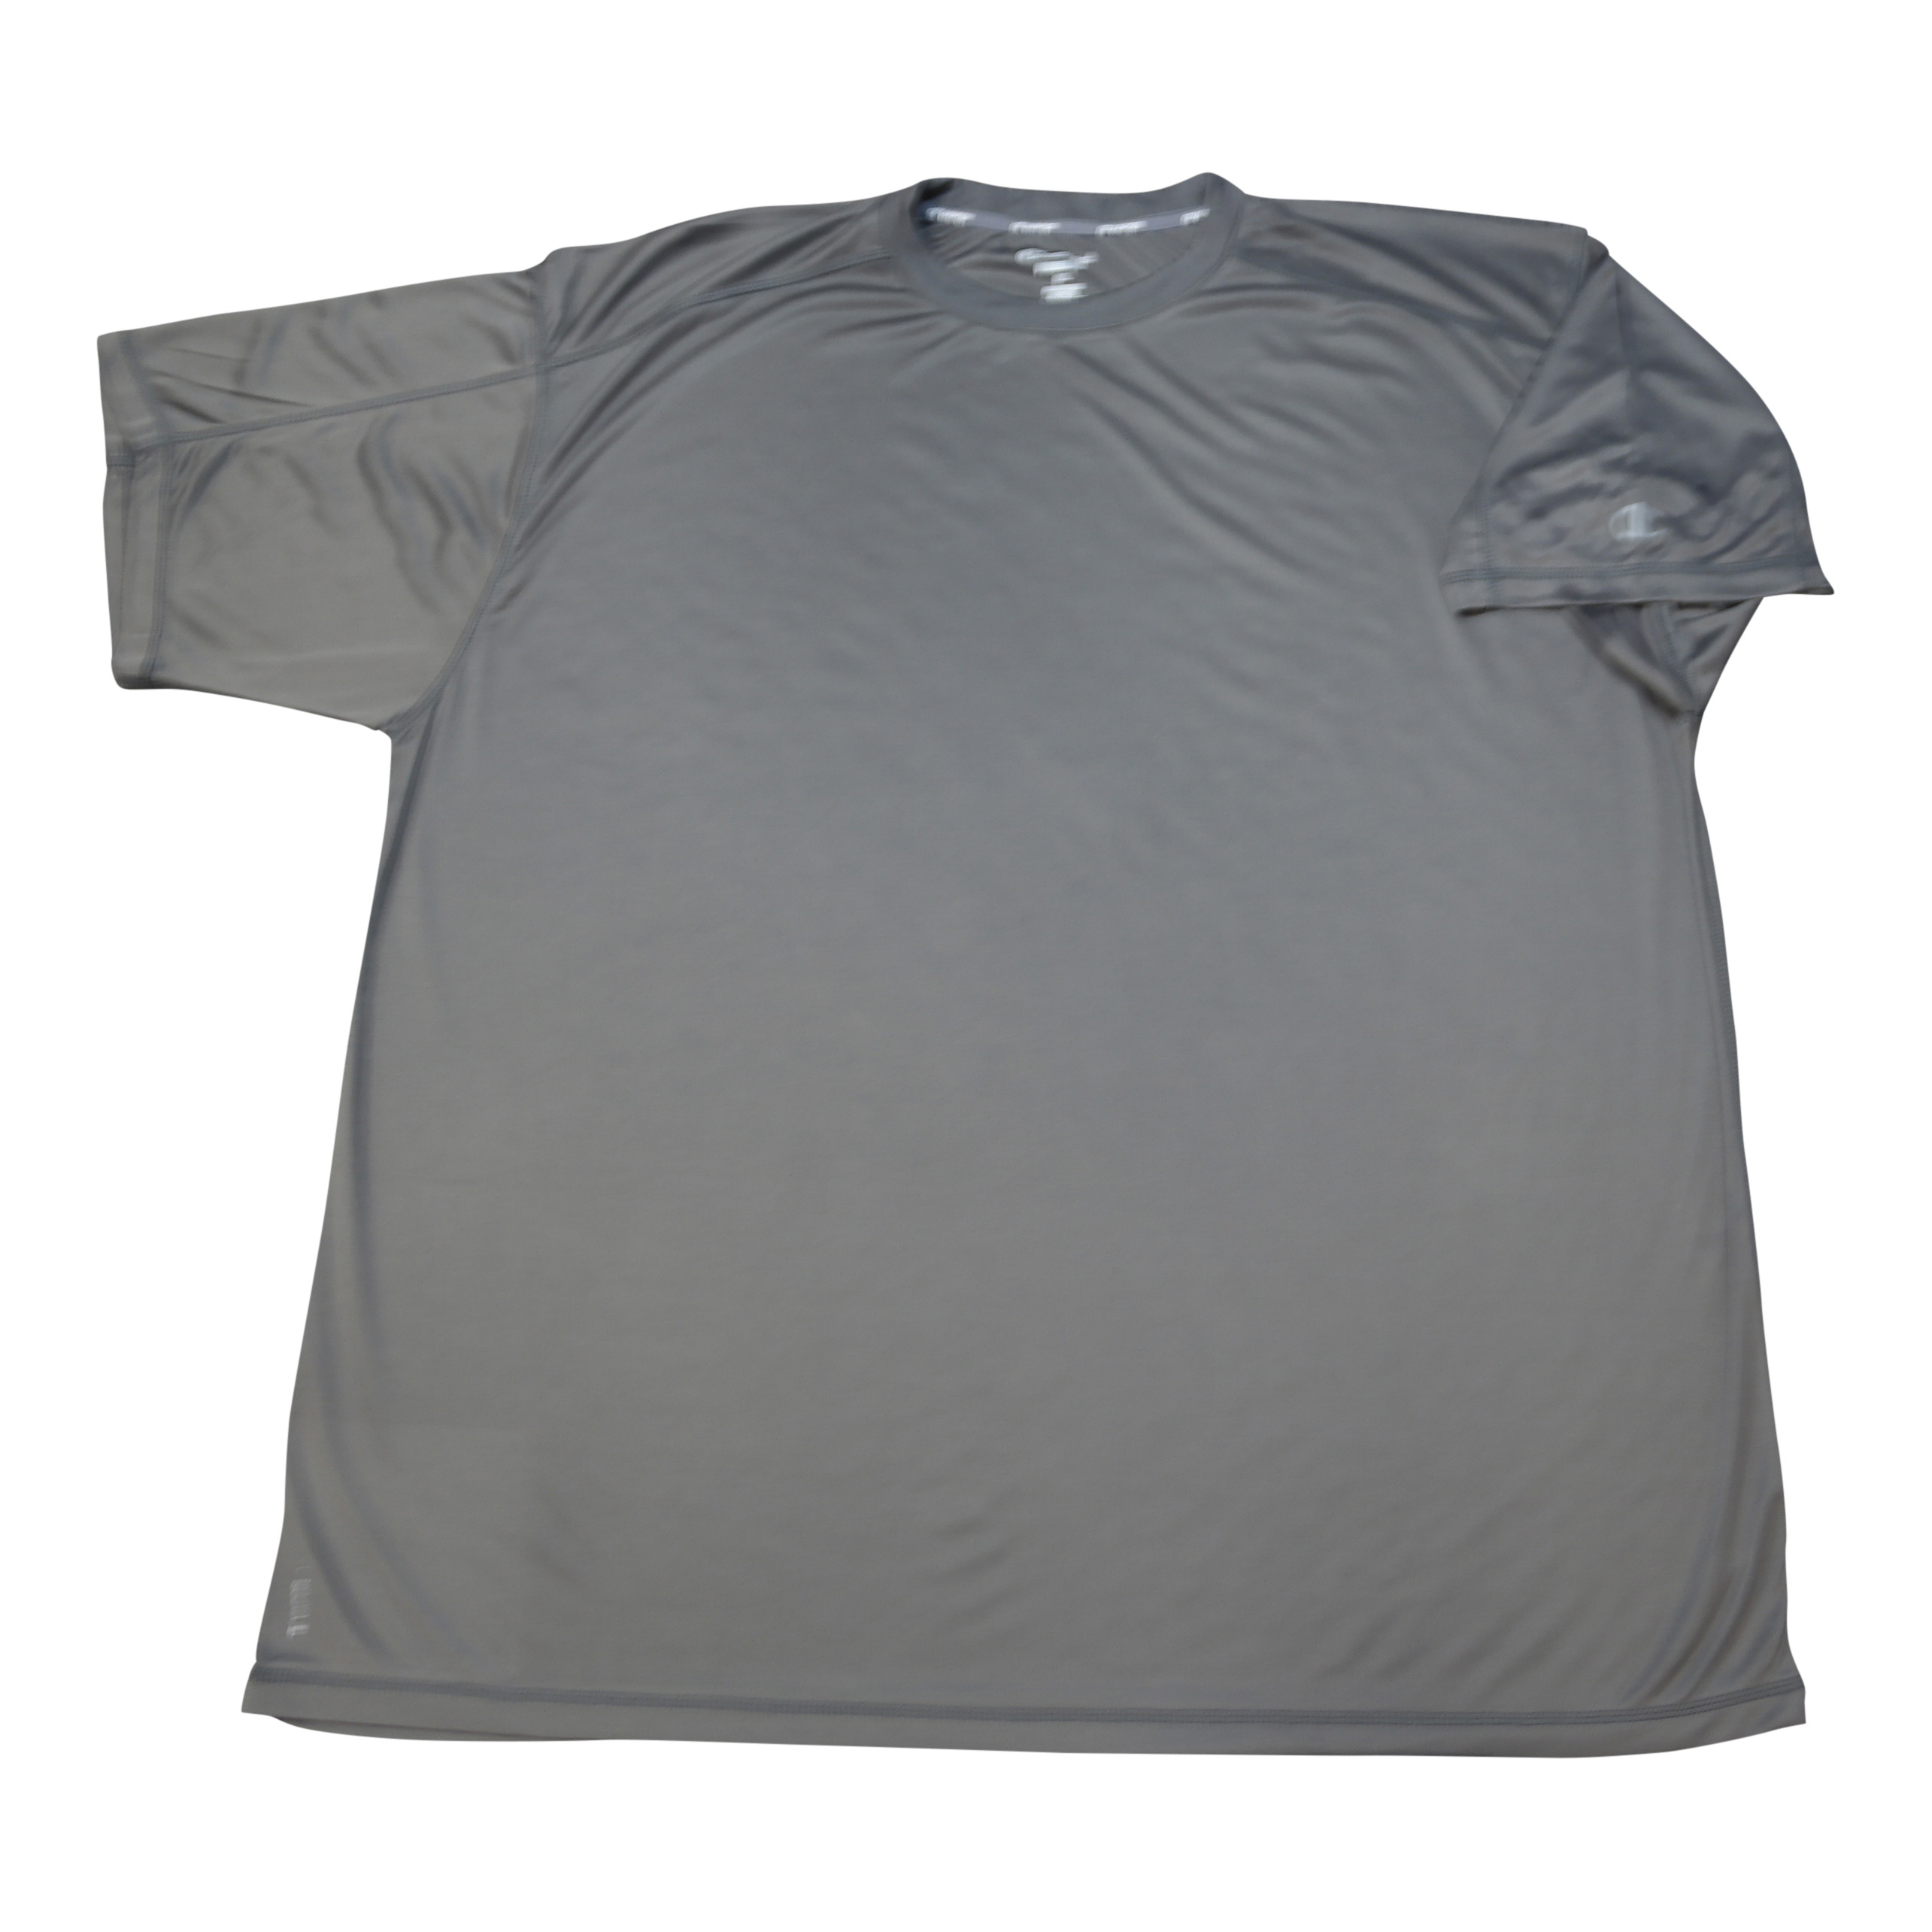 e546d8a1e Martin's Big and Tall :: Casual Wear :: Champion Dri-Vapor Power ...